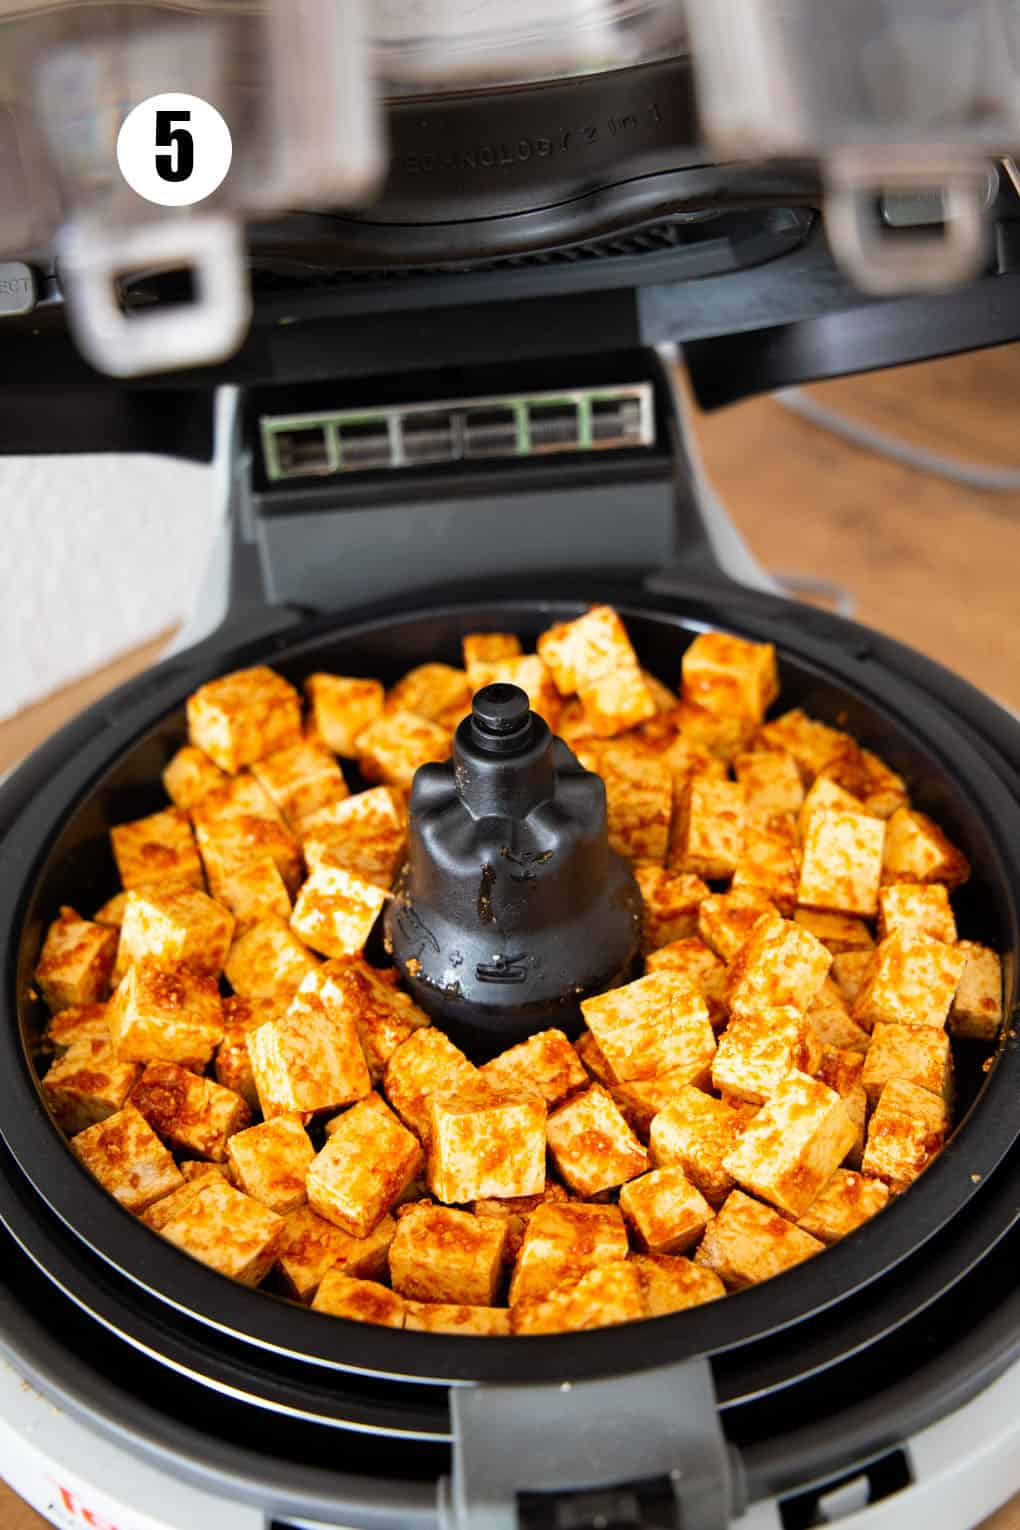 marinated tofu cubes in an air fryer